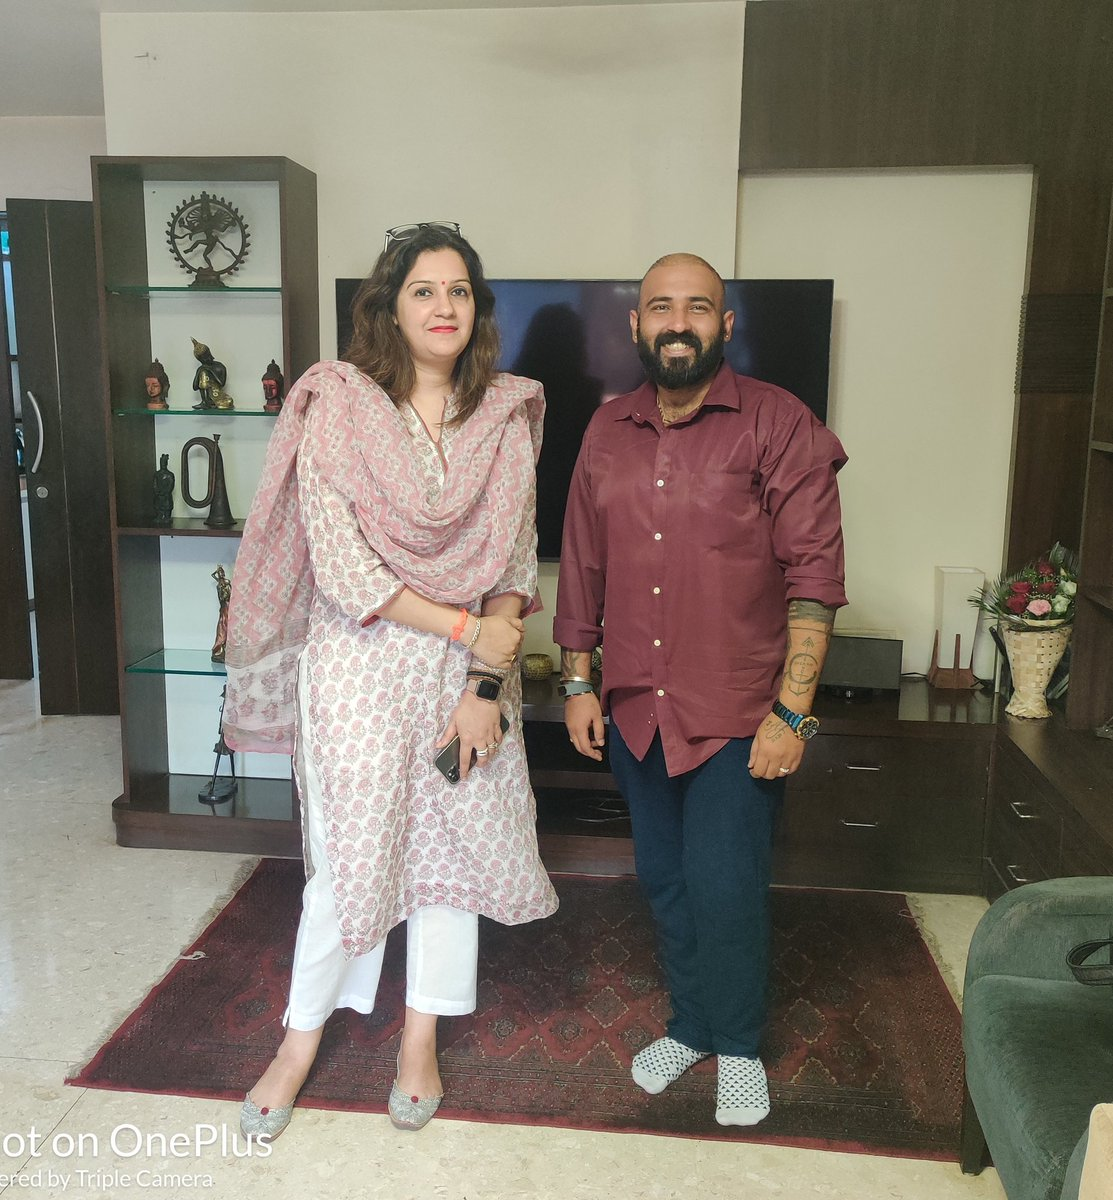 Last week I met @priyankac19 ji & shared gratitude on behalf of team @Khushiyaan_Org for her endless support to @RotiGharIndia during #NationalLockdown which helped us to feed 1 million lives  Co-Projects & scale-up in pipeline for Mumbai & Delhi  Many thanks for your mentorship